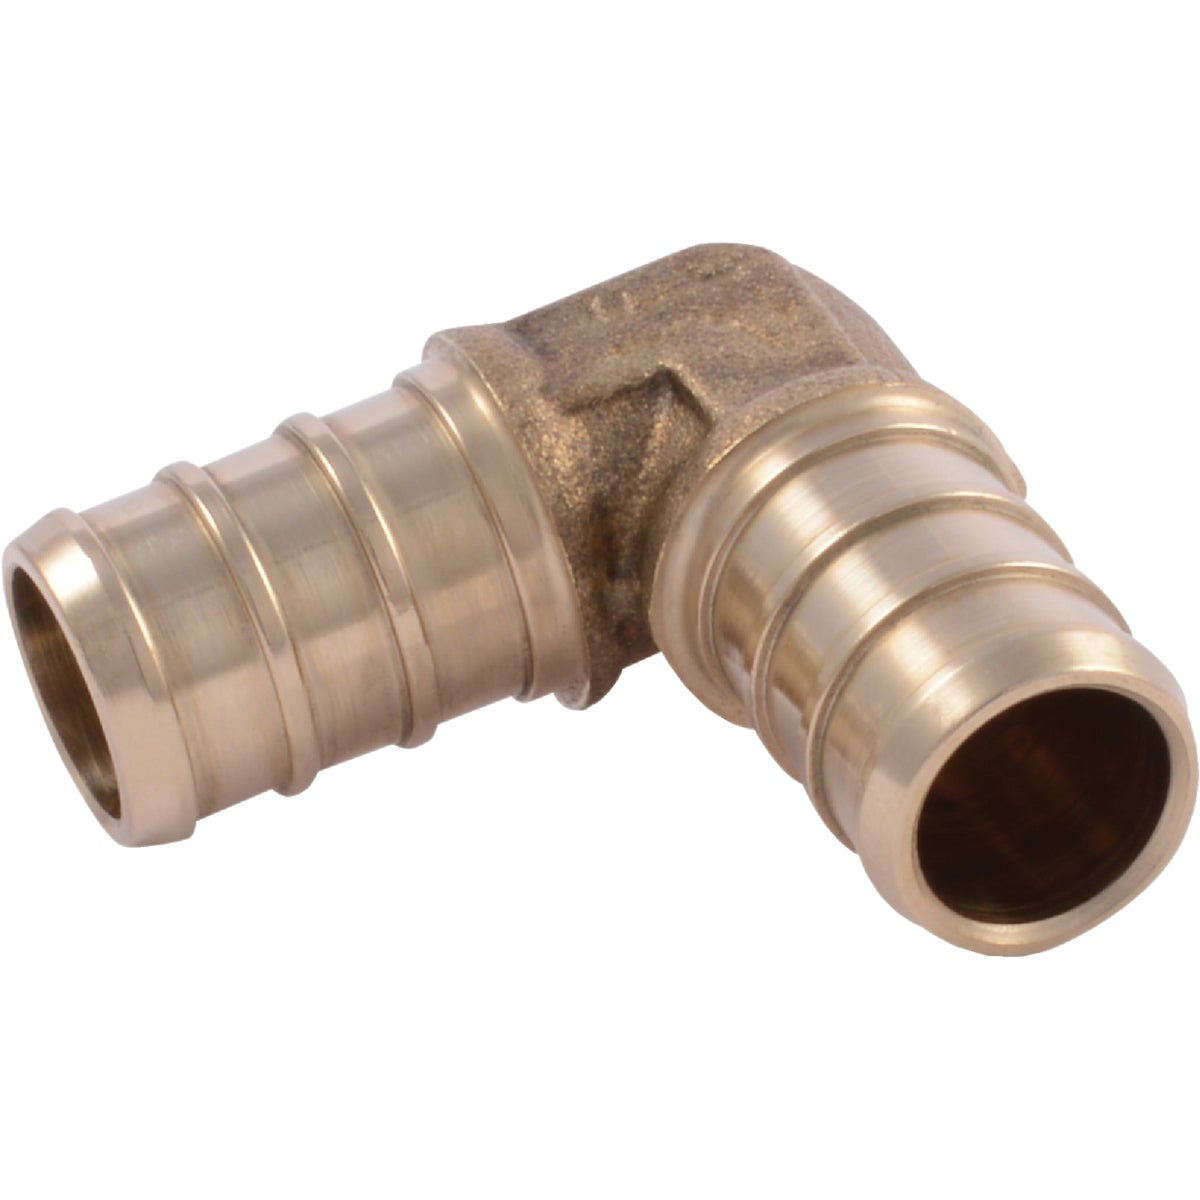 1/2CFX1/2CF BRASS ELBOW - LFP-520 by Watts Pex